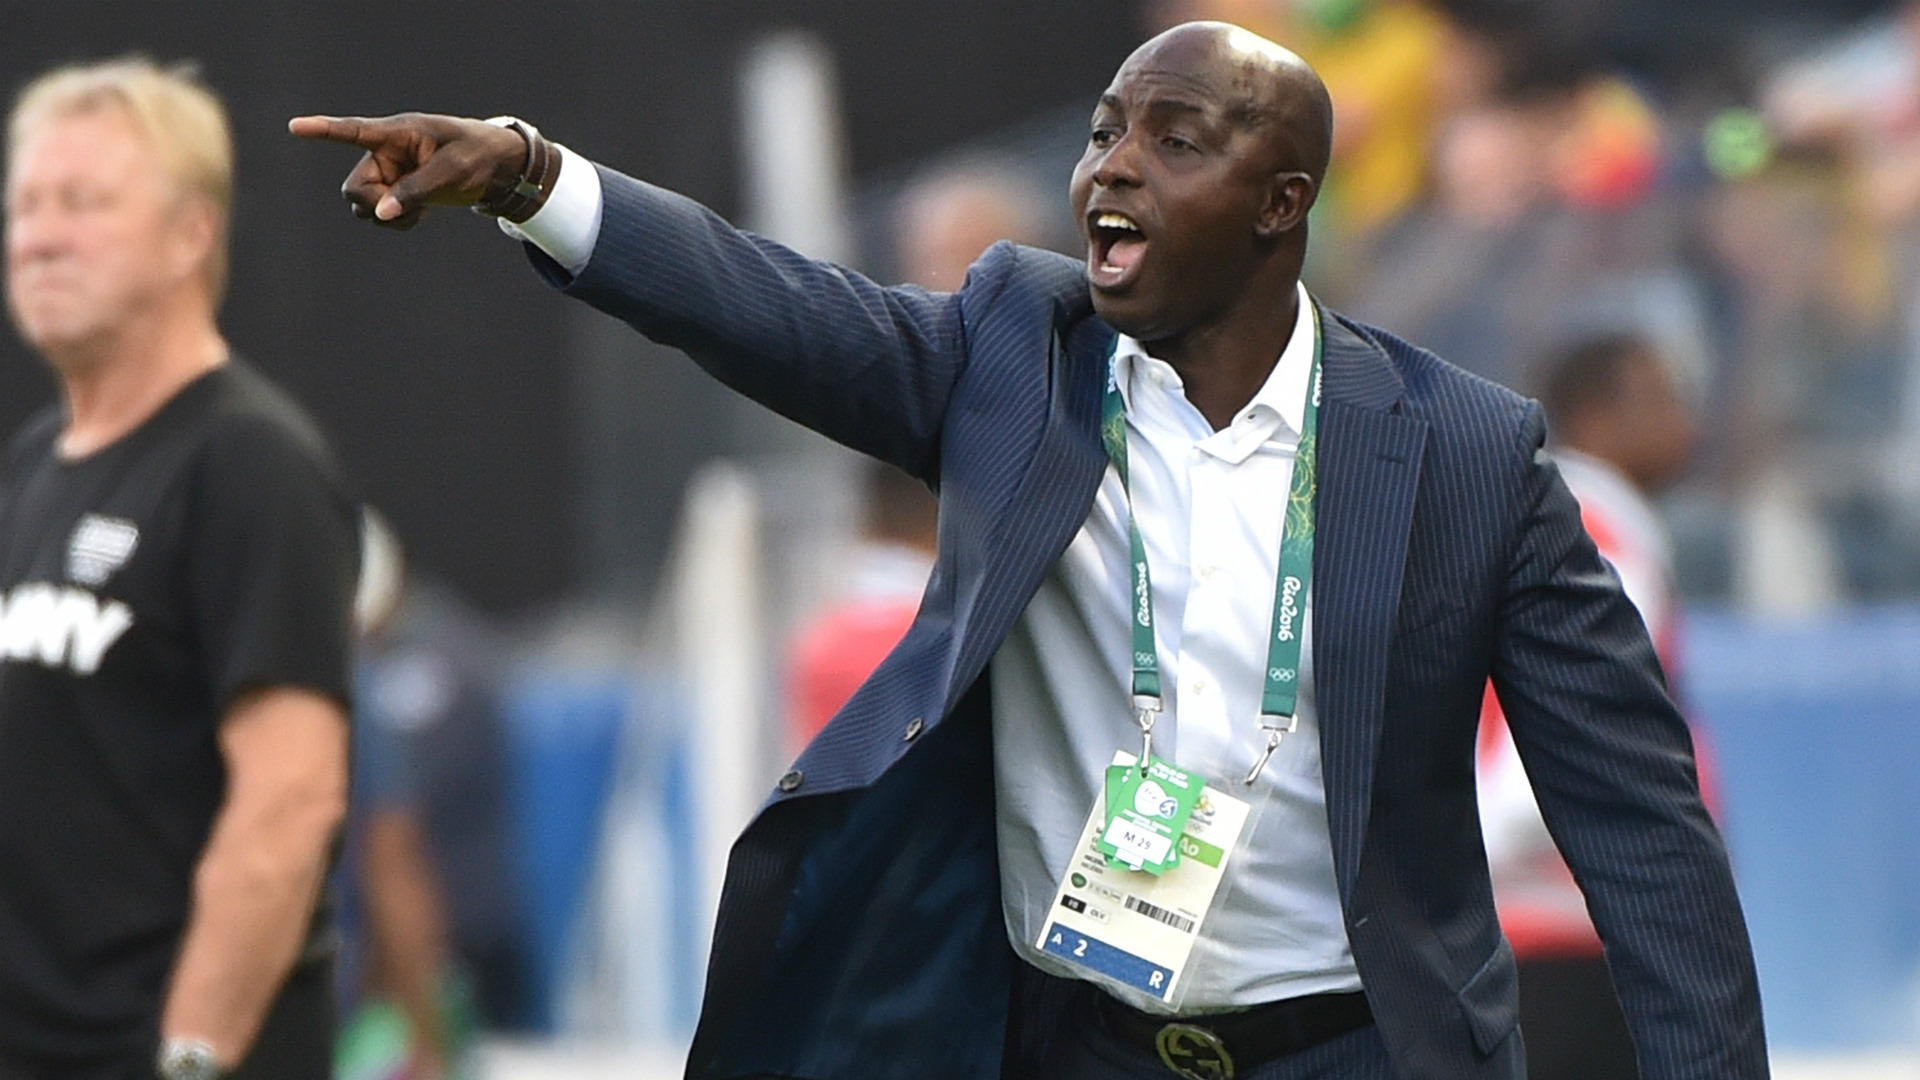 Ex Super Eagles Coach, Samson Siasia's Mother Kidnapped In Bayelsa